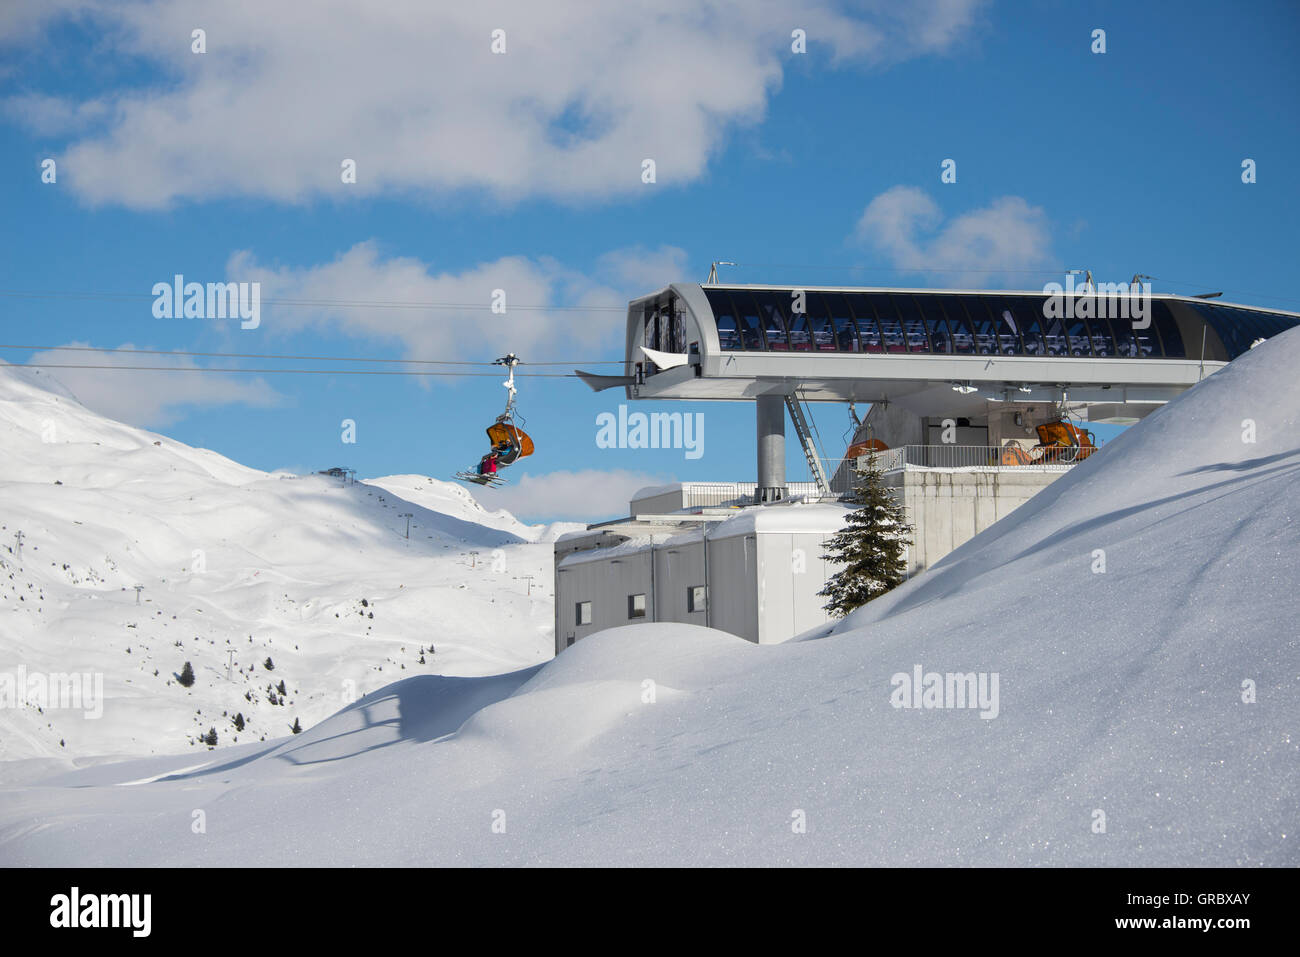 Chairlift Midwaystation In Skiing Area On A Sunny Winterday - Stock Image